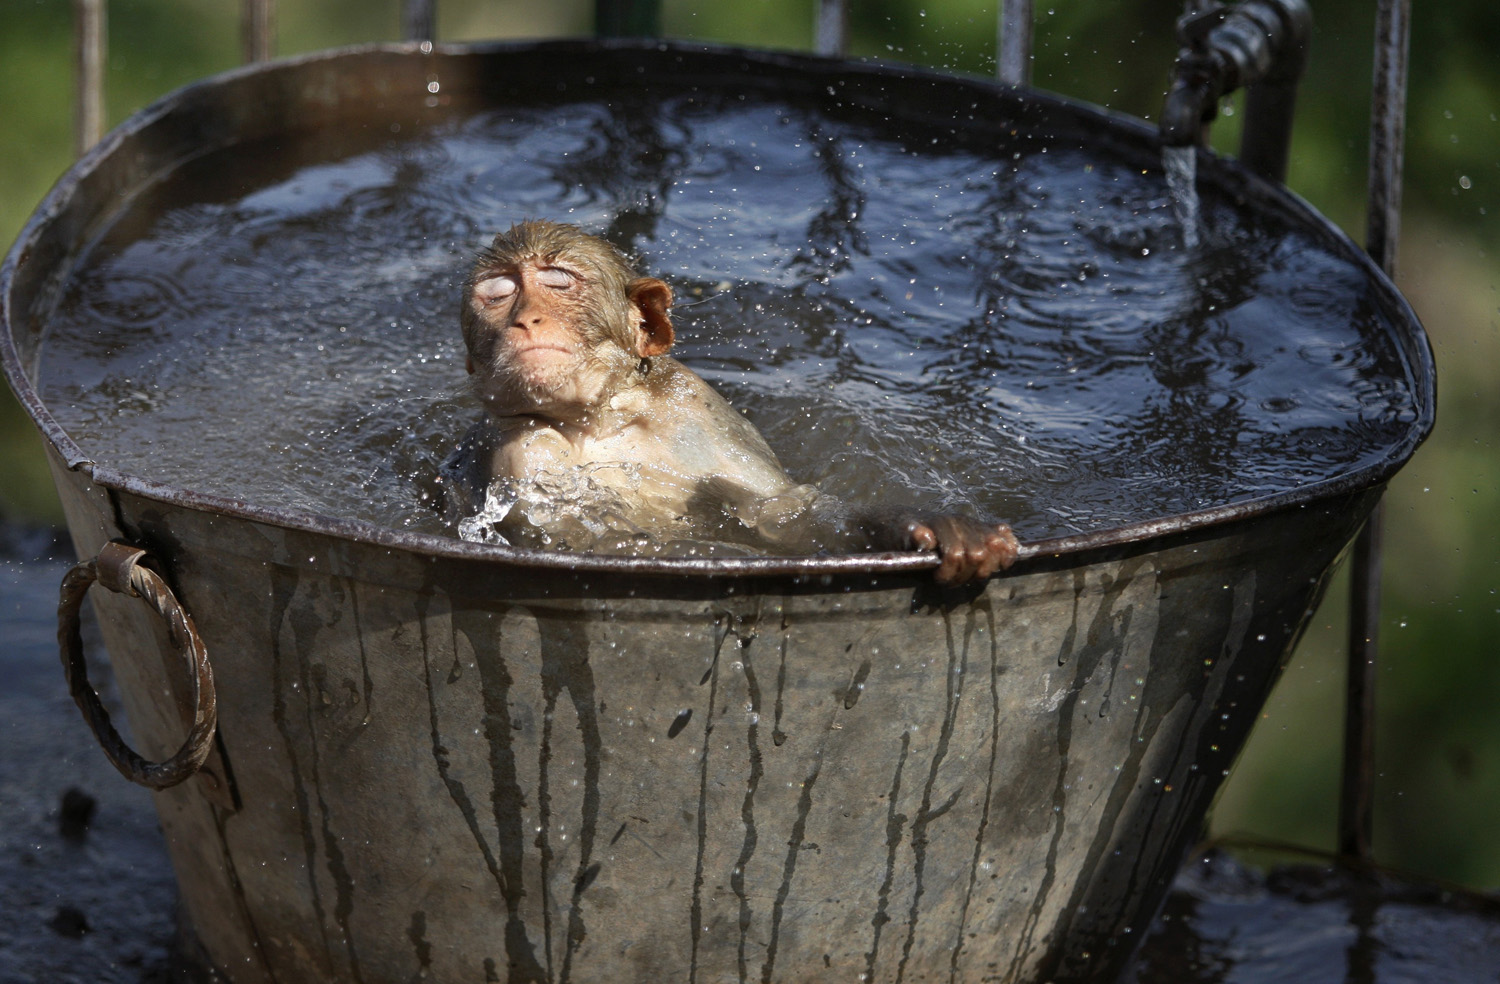 A monkey cools off in a water tub in the premises of a Hindu temple on a hot summer afternoon in Jammu, India, June 11, 2014.